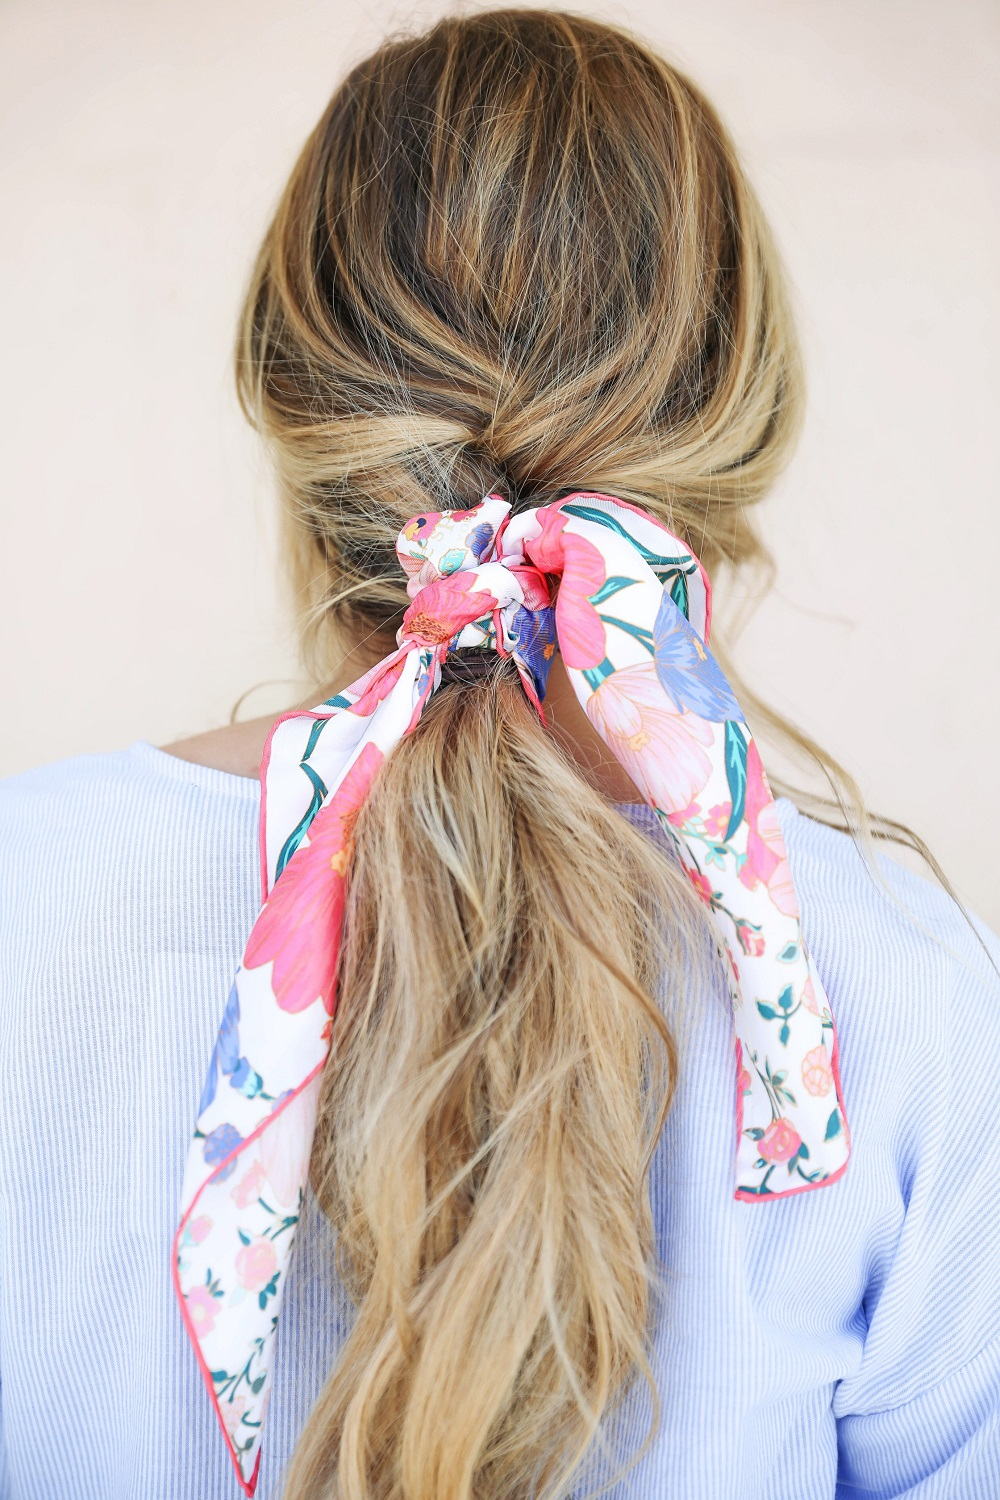 how-to-style-hair-accessories-scarf-scarves-bandana-silk-braid-floral-print-summer.jpg